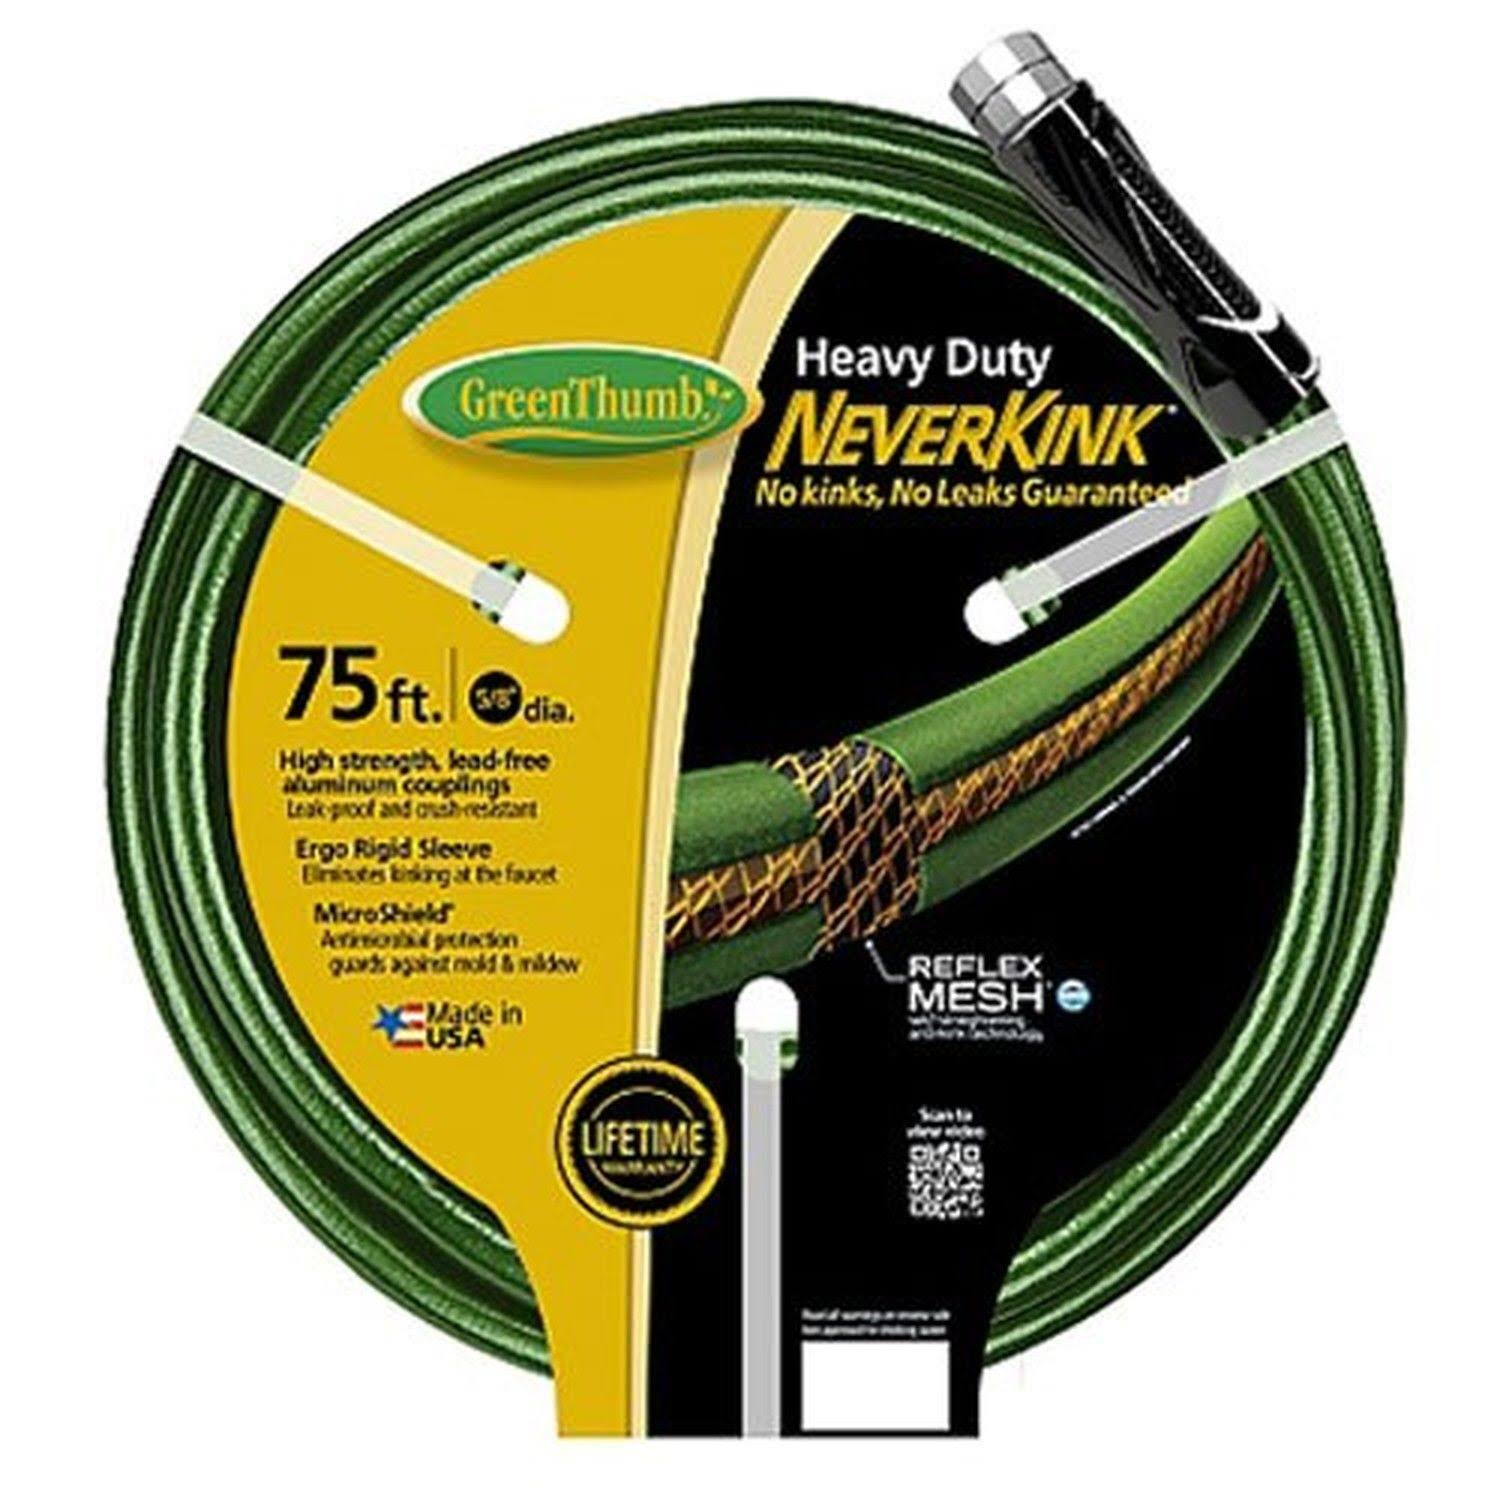 Apex 784678 Neverkink Garden Hose, Heavy-Duty, 5/8-In. x 75-Ft.